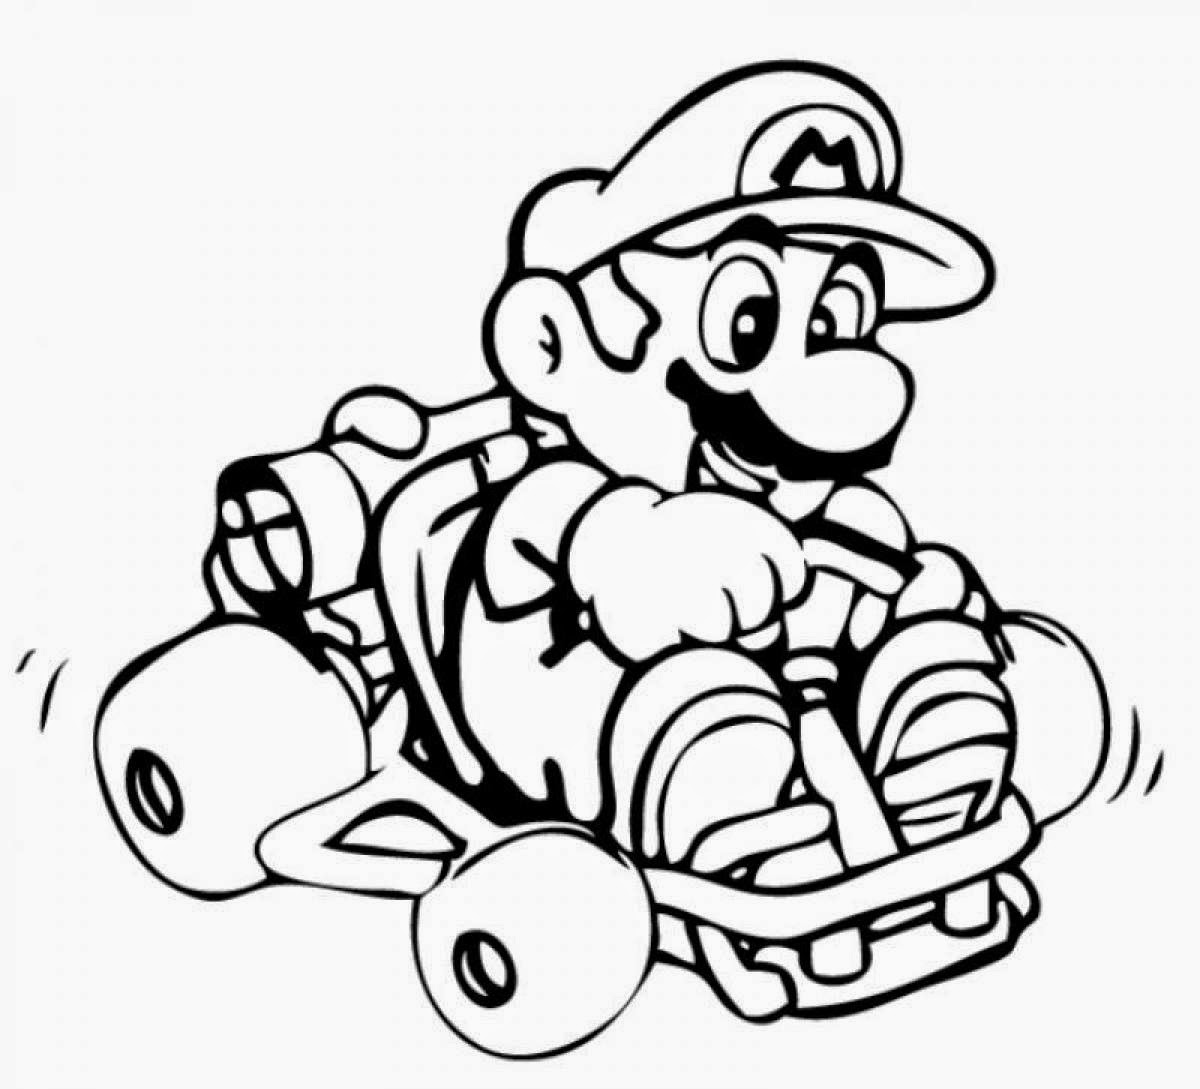 mario picture to color new super mario coloring pages download and print for free color to mario picture